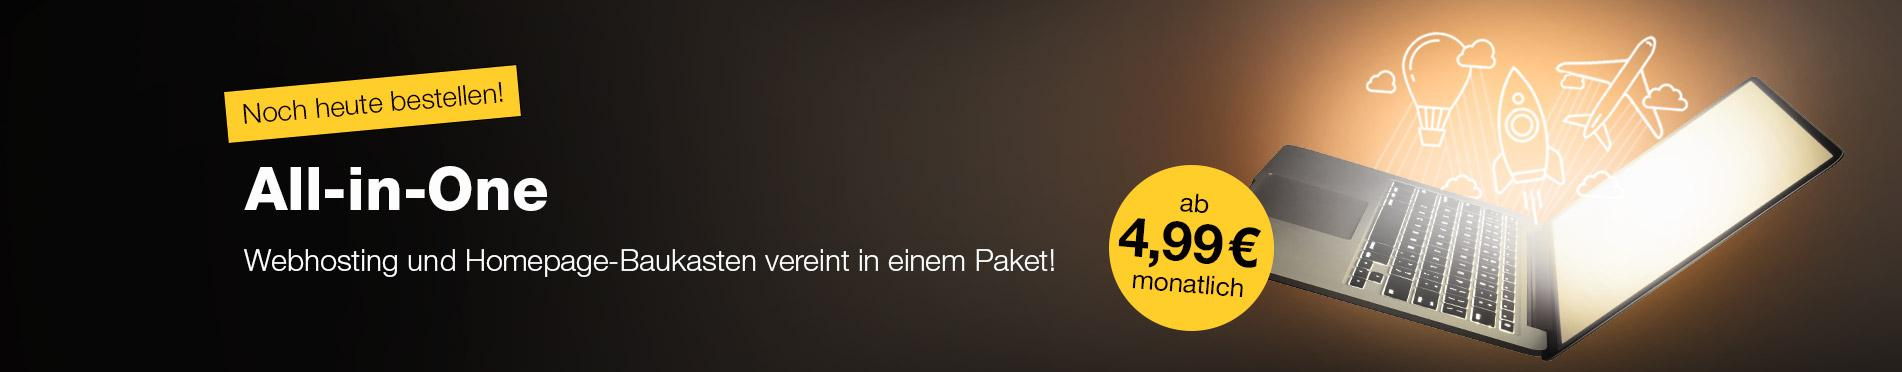 Webhosting und Homepage-Baukasten vereint in unseren All-in-One Paketen!